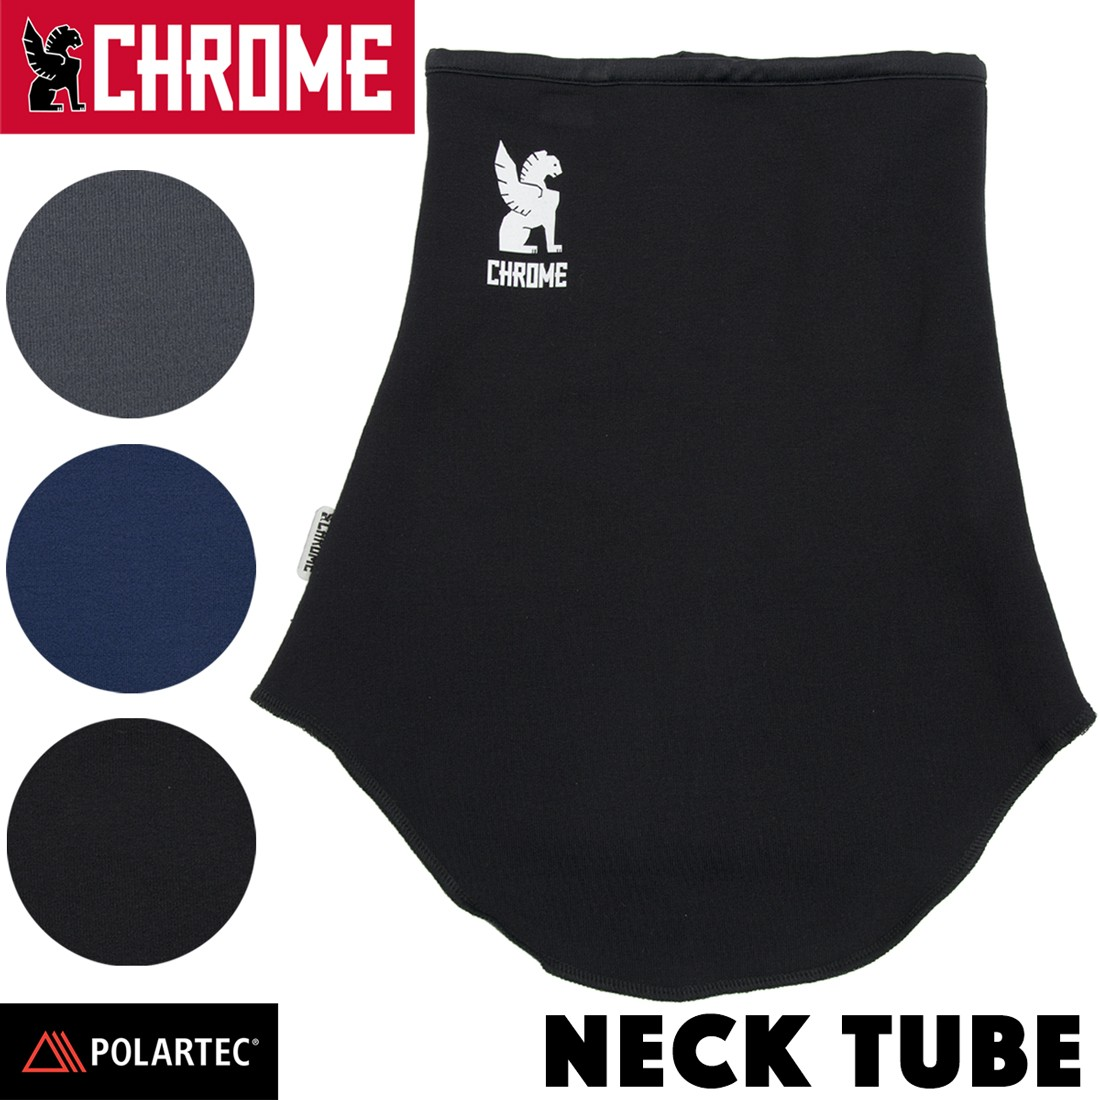 CHROME NECK TUBE